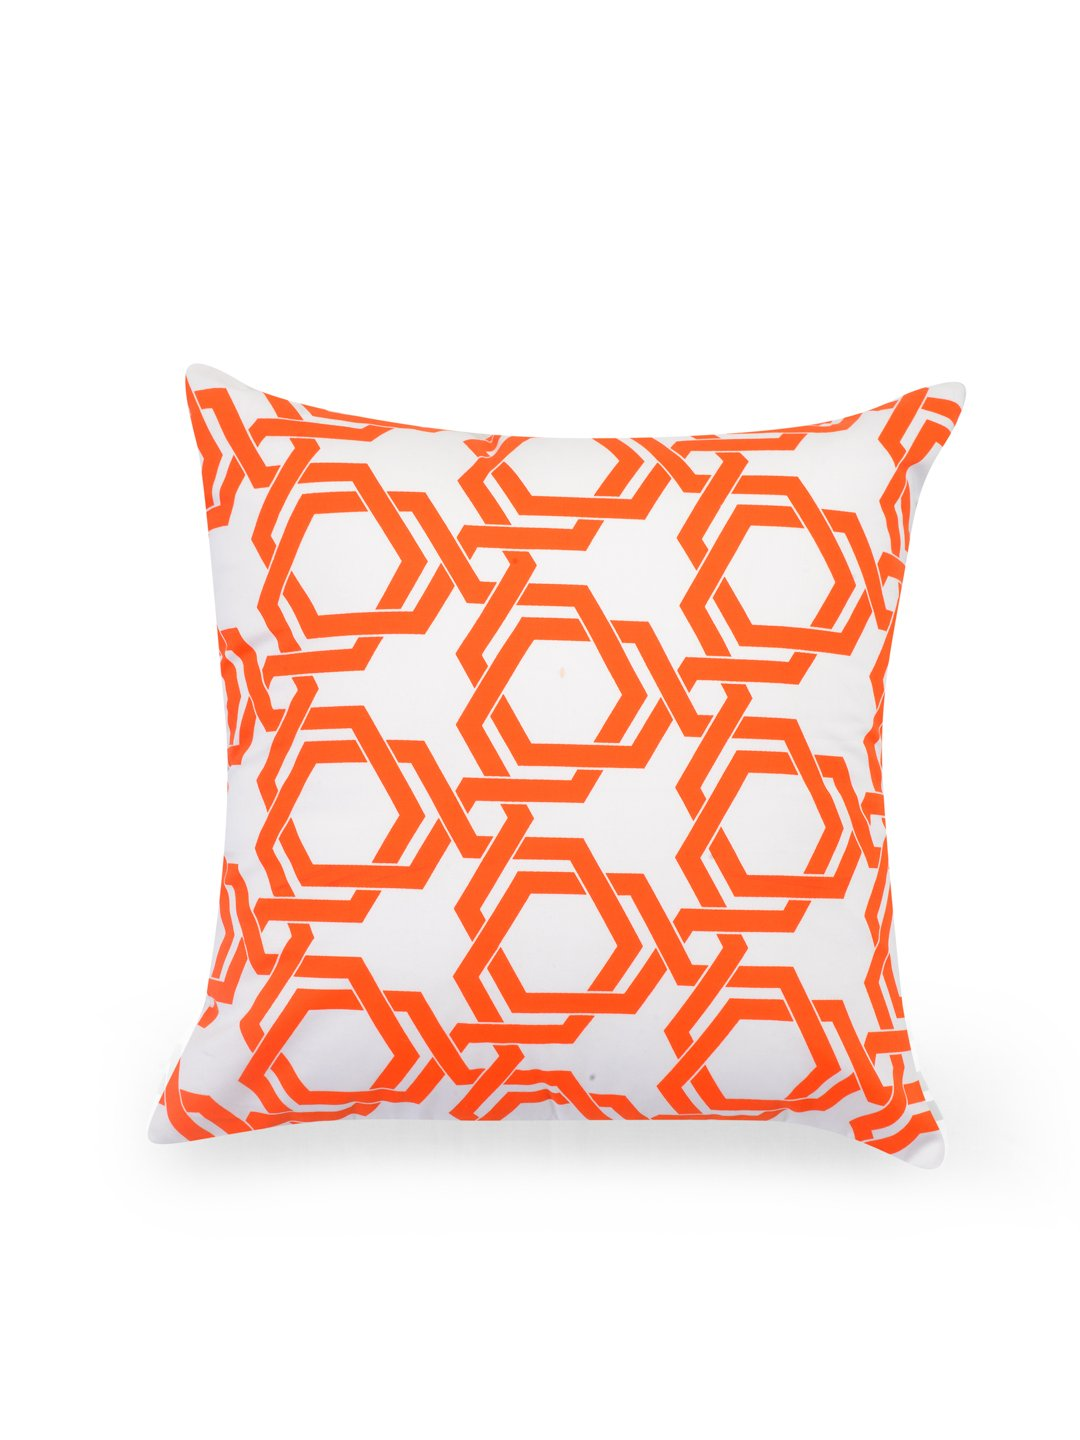 Hand-painted Tangerine Delight Cushion Covers (Set of 5) - RANGRAGE - 2